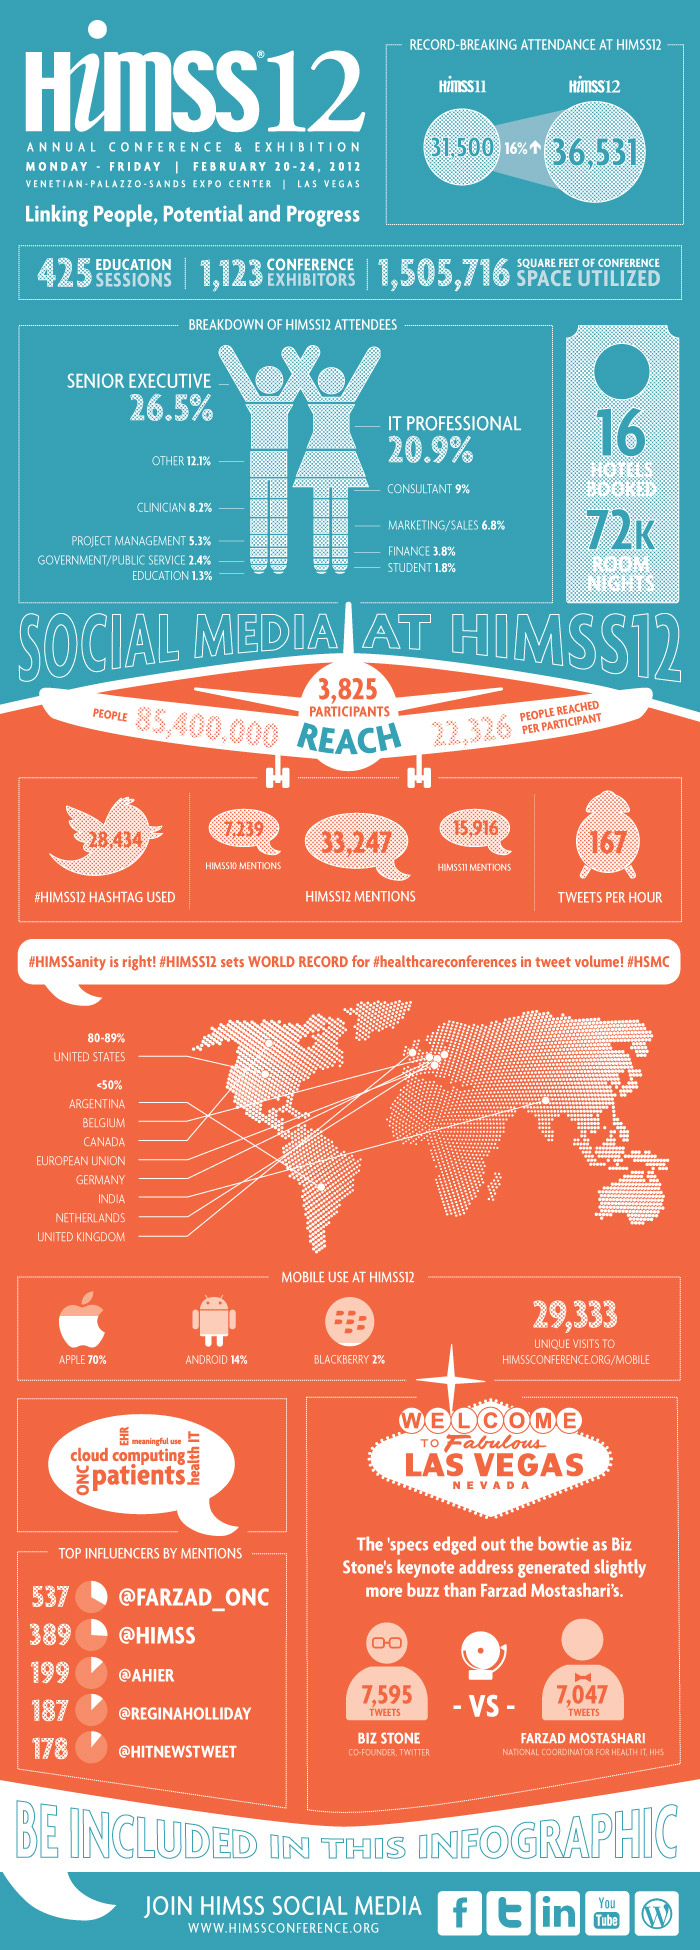 HIMSS12 Infographic